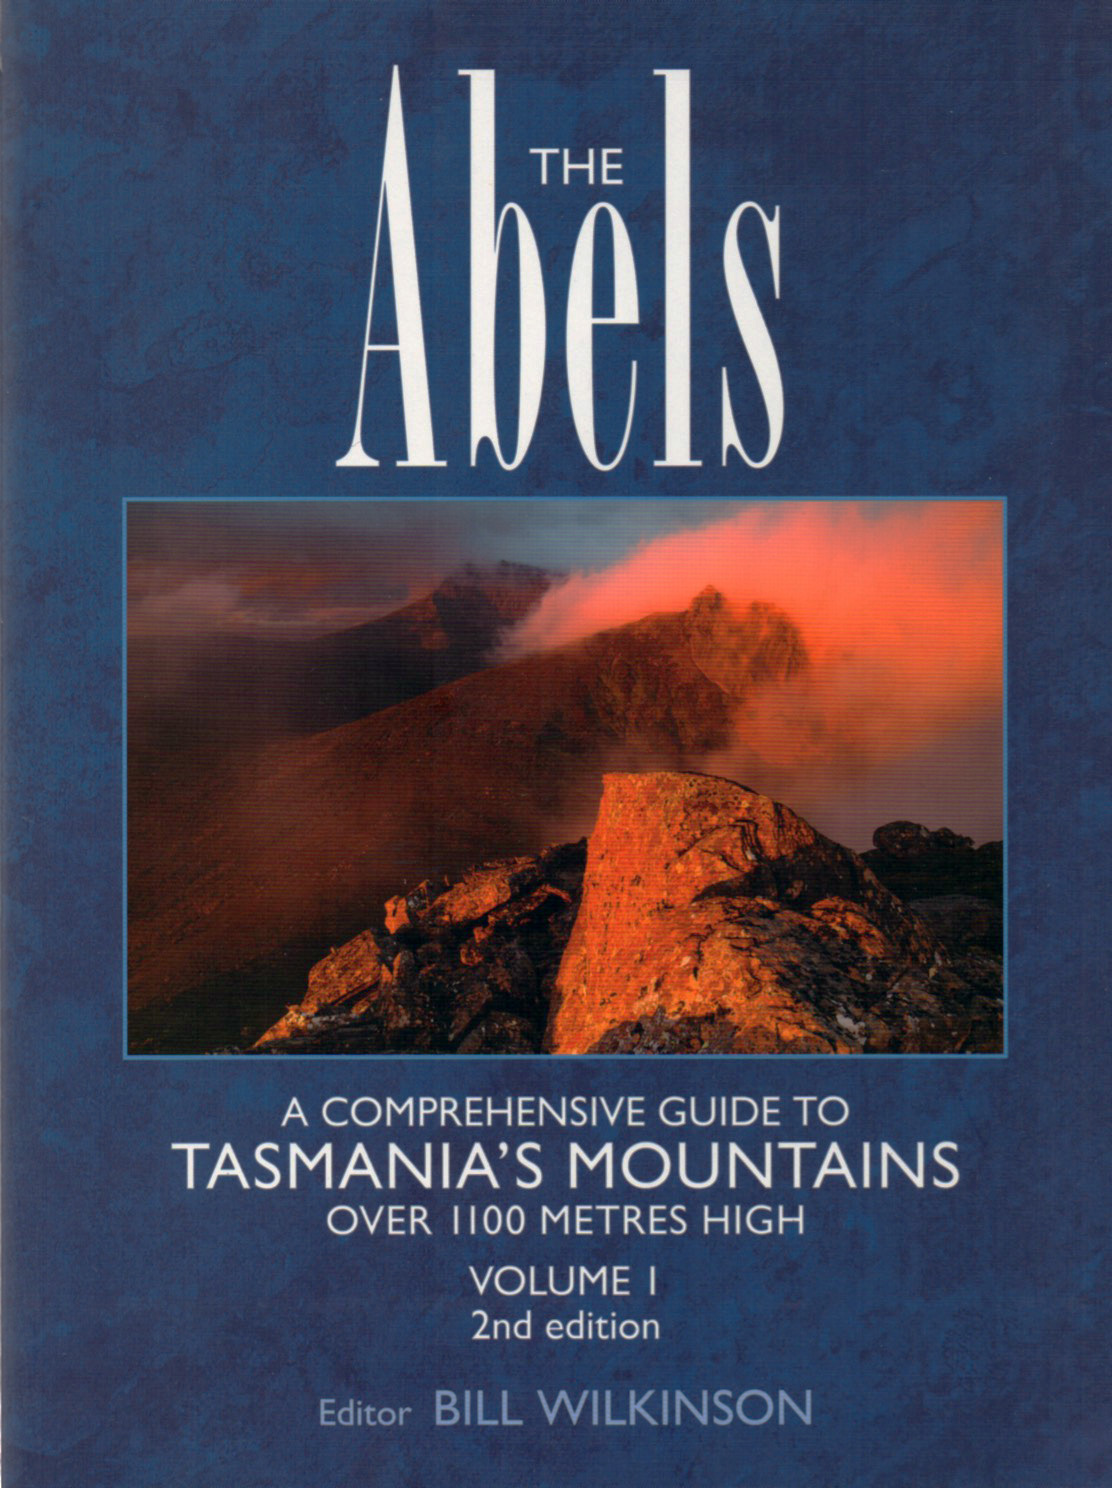 The Abels Volume One hardcover